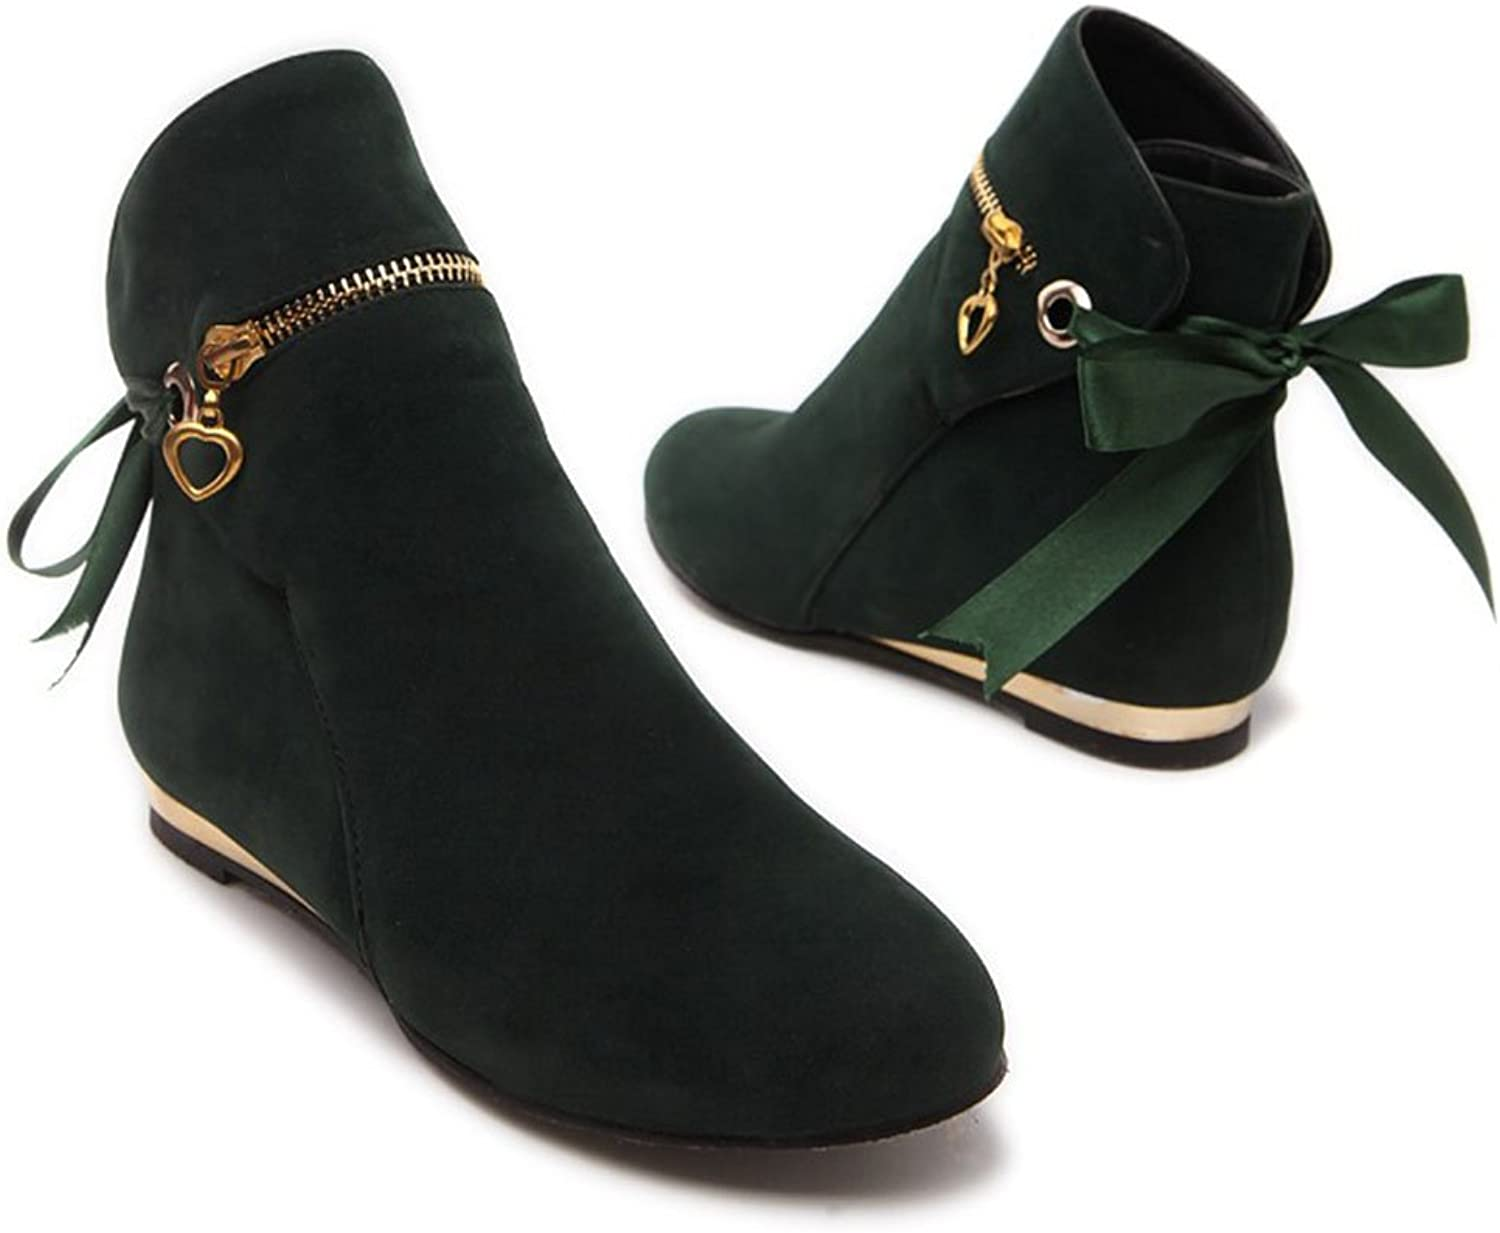 CHFSO Women's Sexy Solid Round Toe Bow Zipper Charms Low Heel Ankle Boots